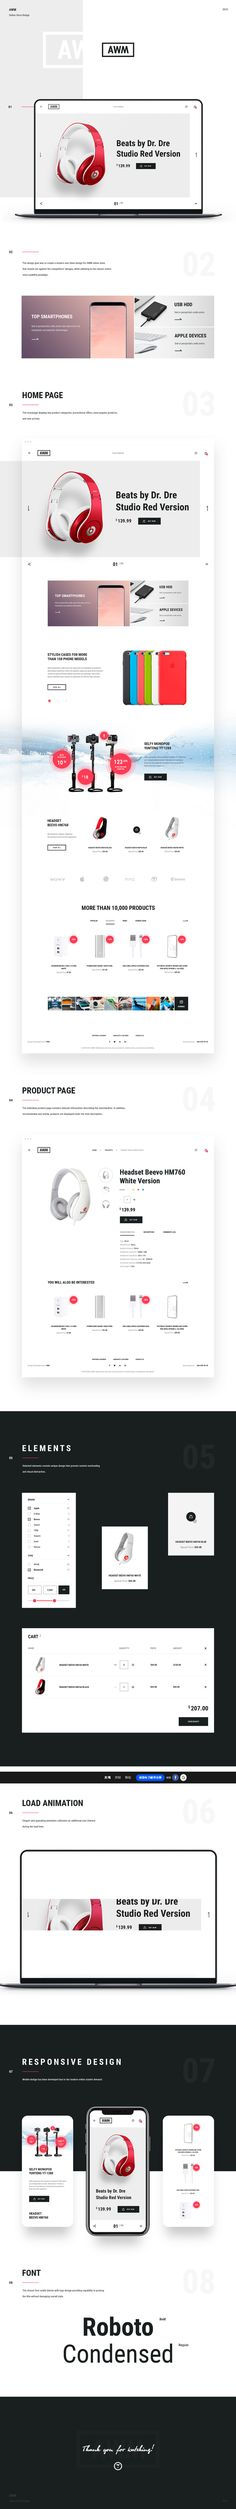 Web design for AWM online store